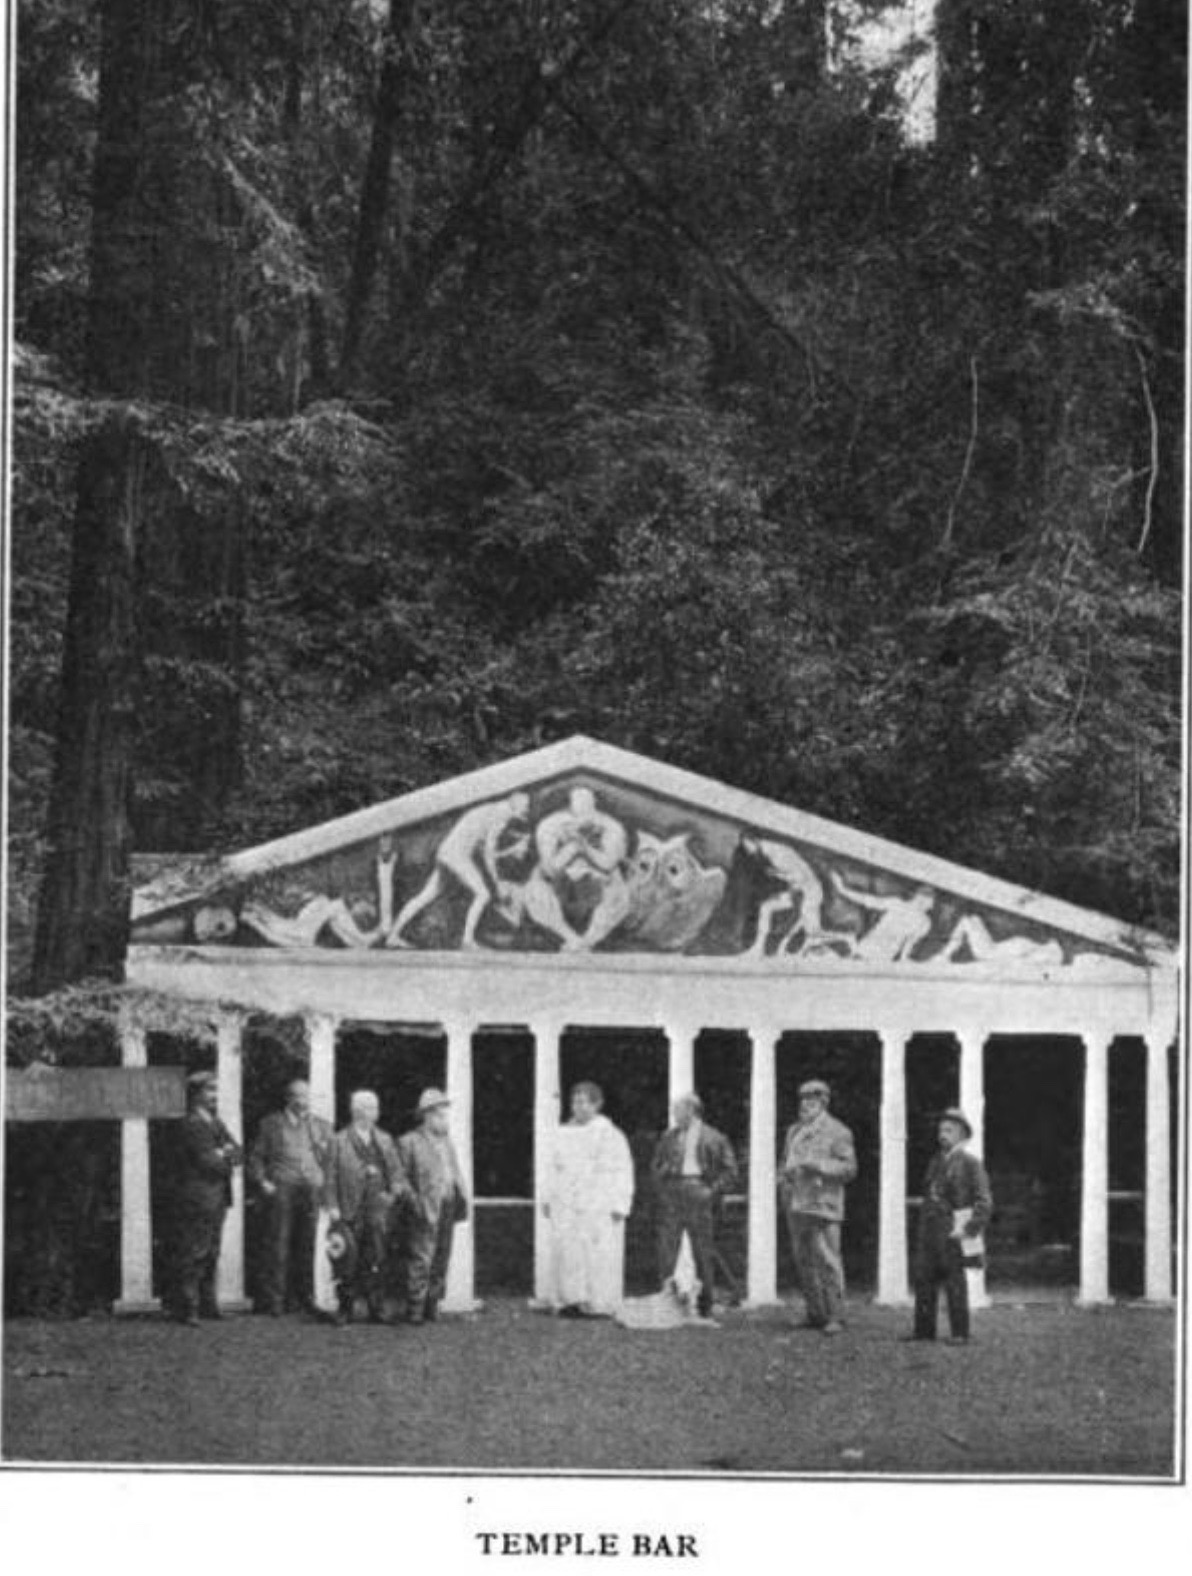 Temple Bar Bohemian Grove